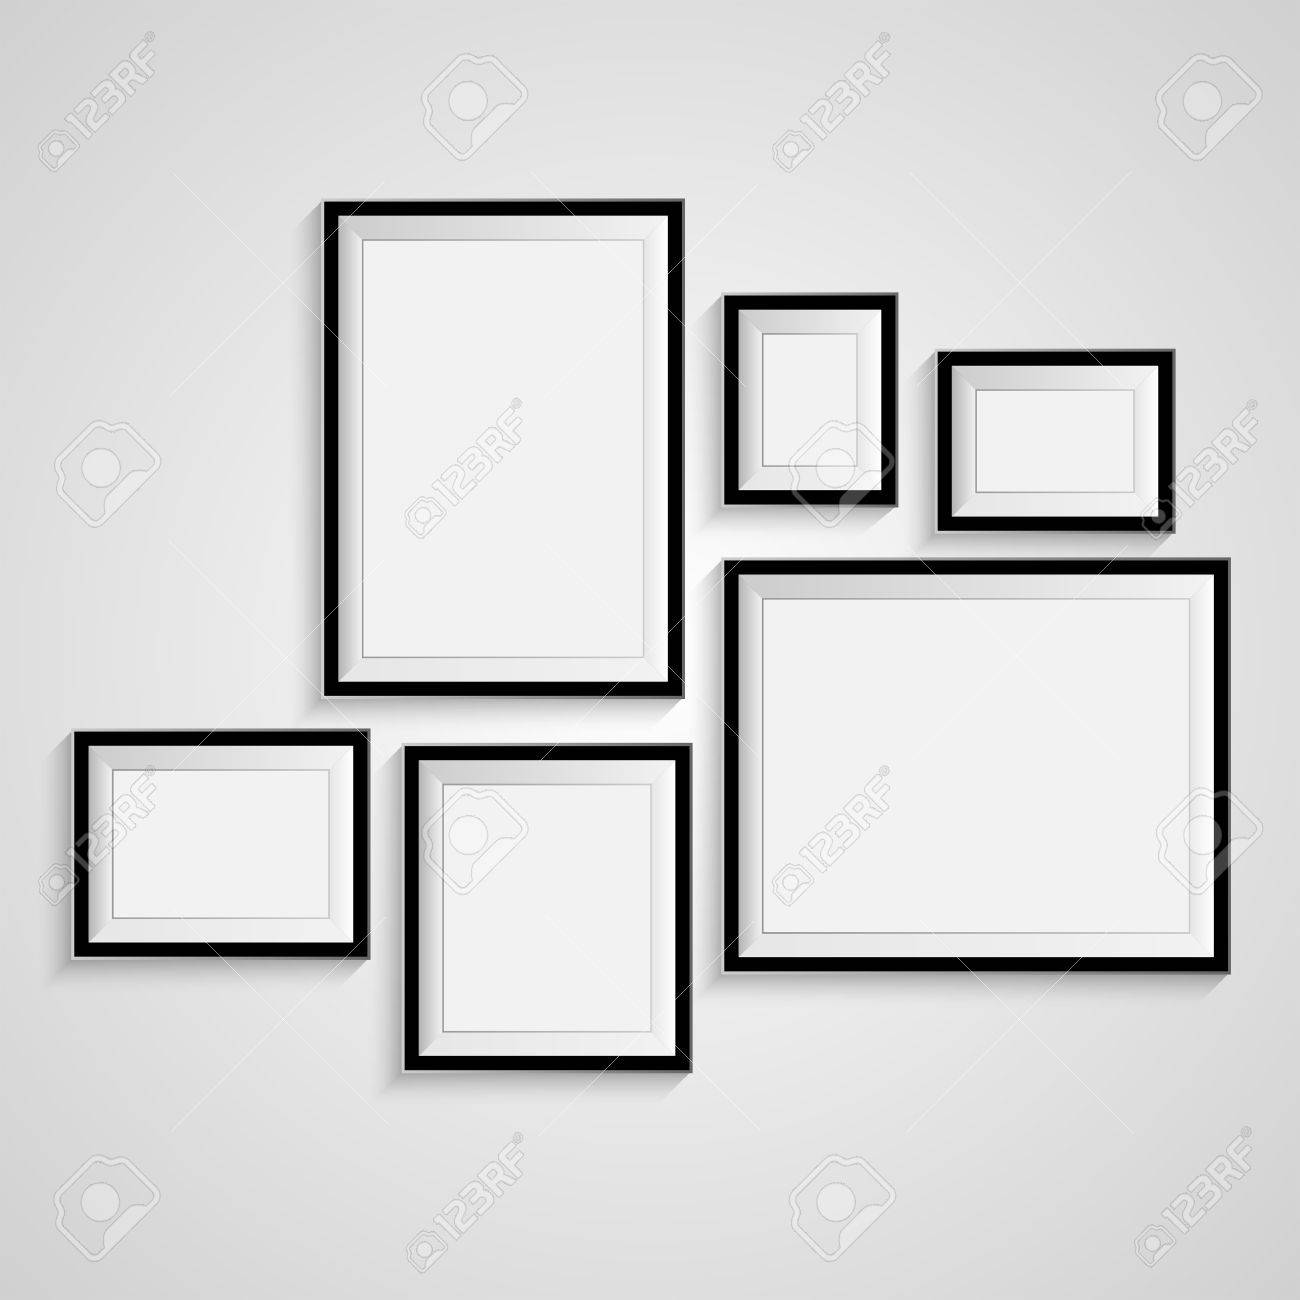 Blank picture frame template set isolated on wall - 43562188